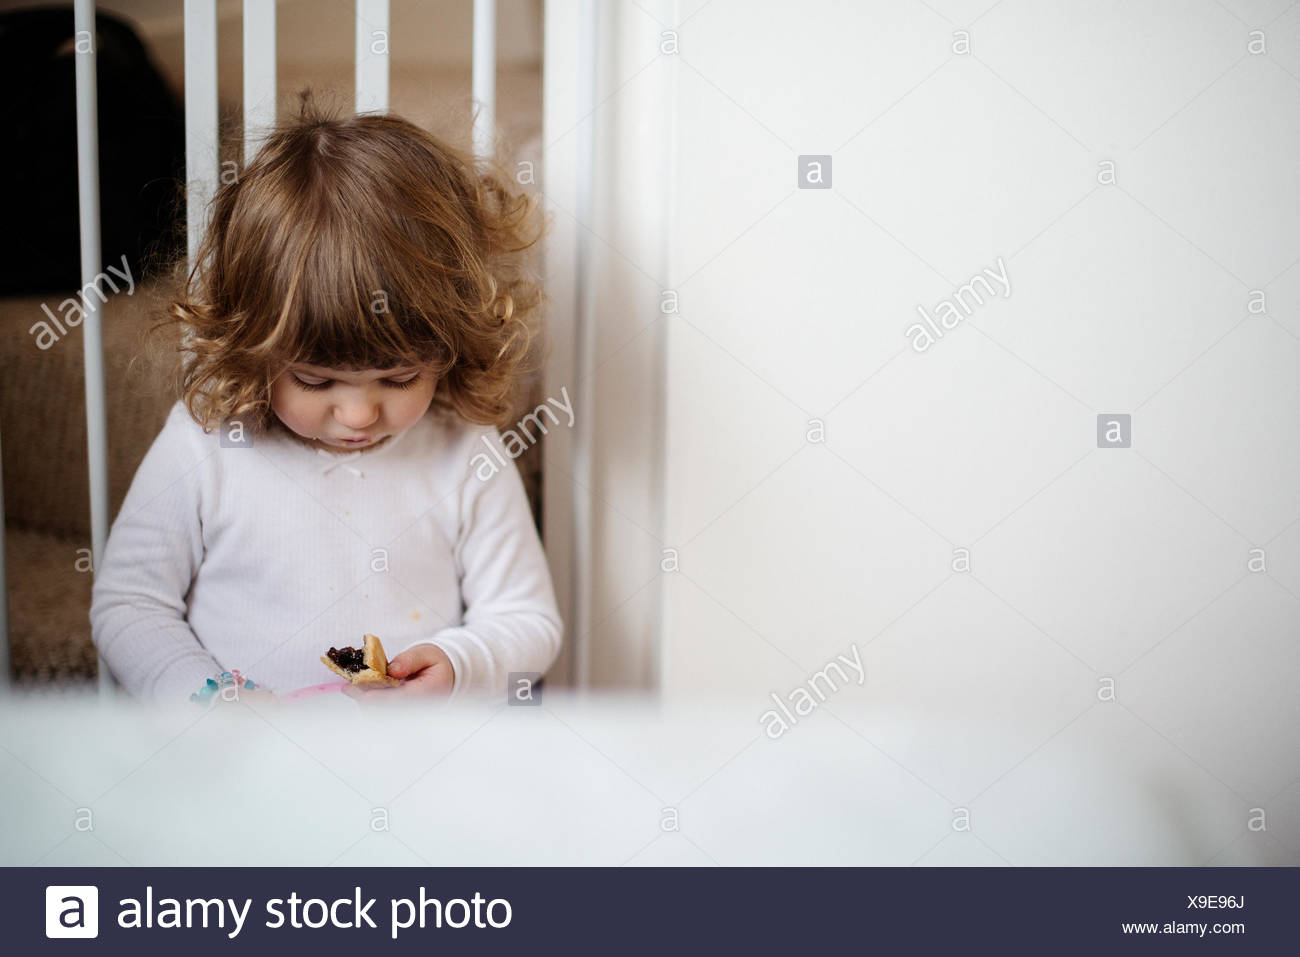 Girl eating snack sur escaliers Photo Stock